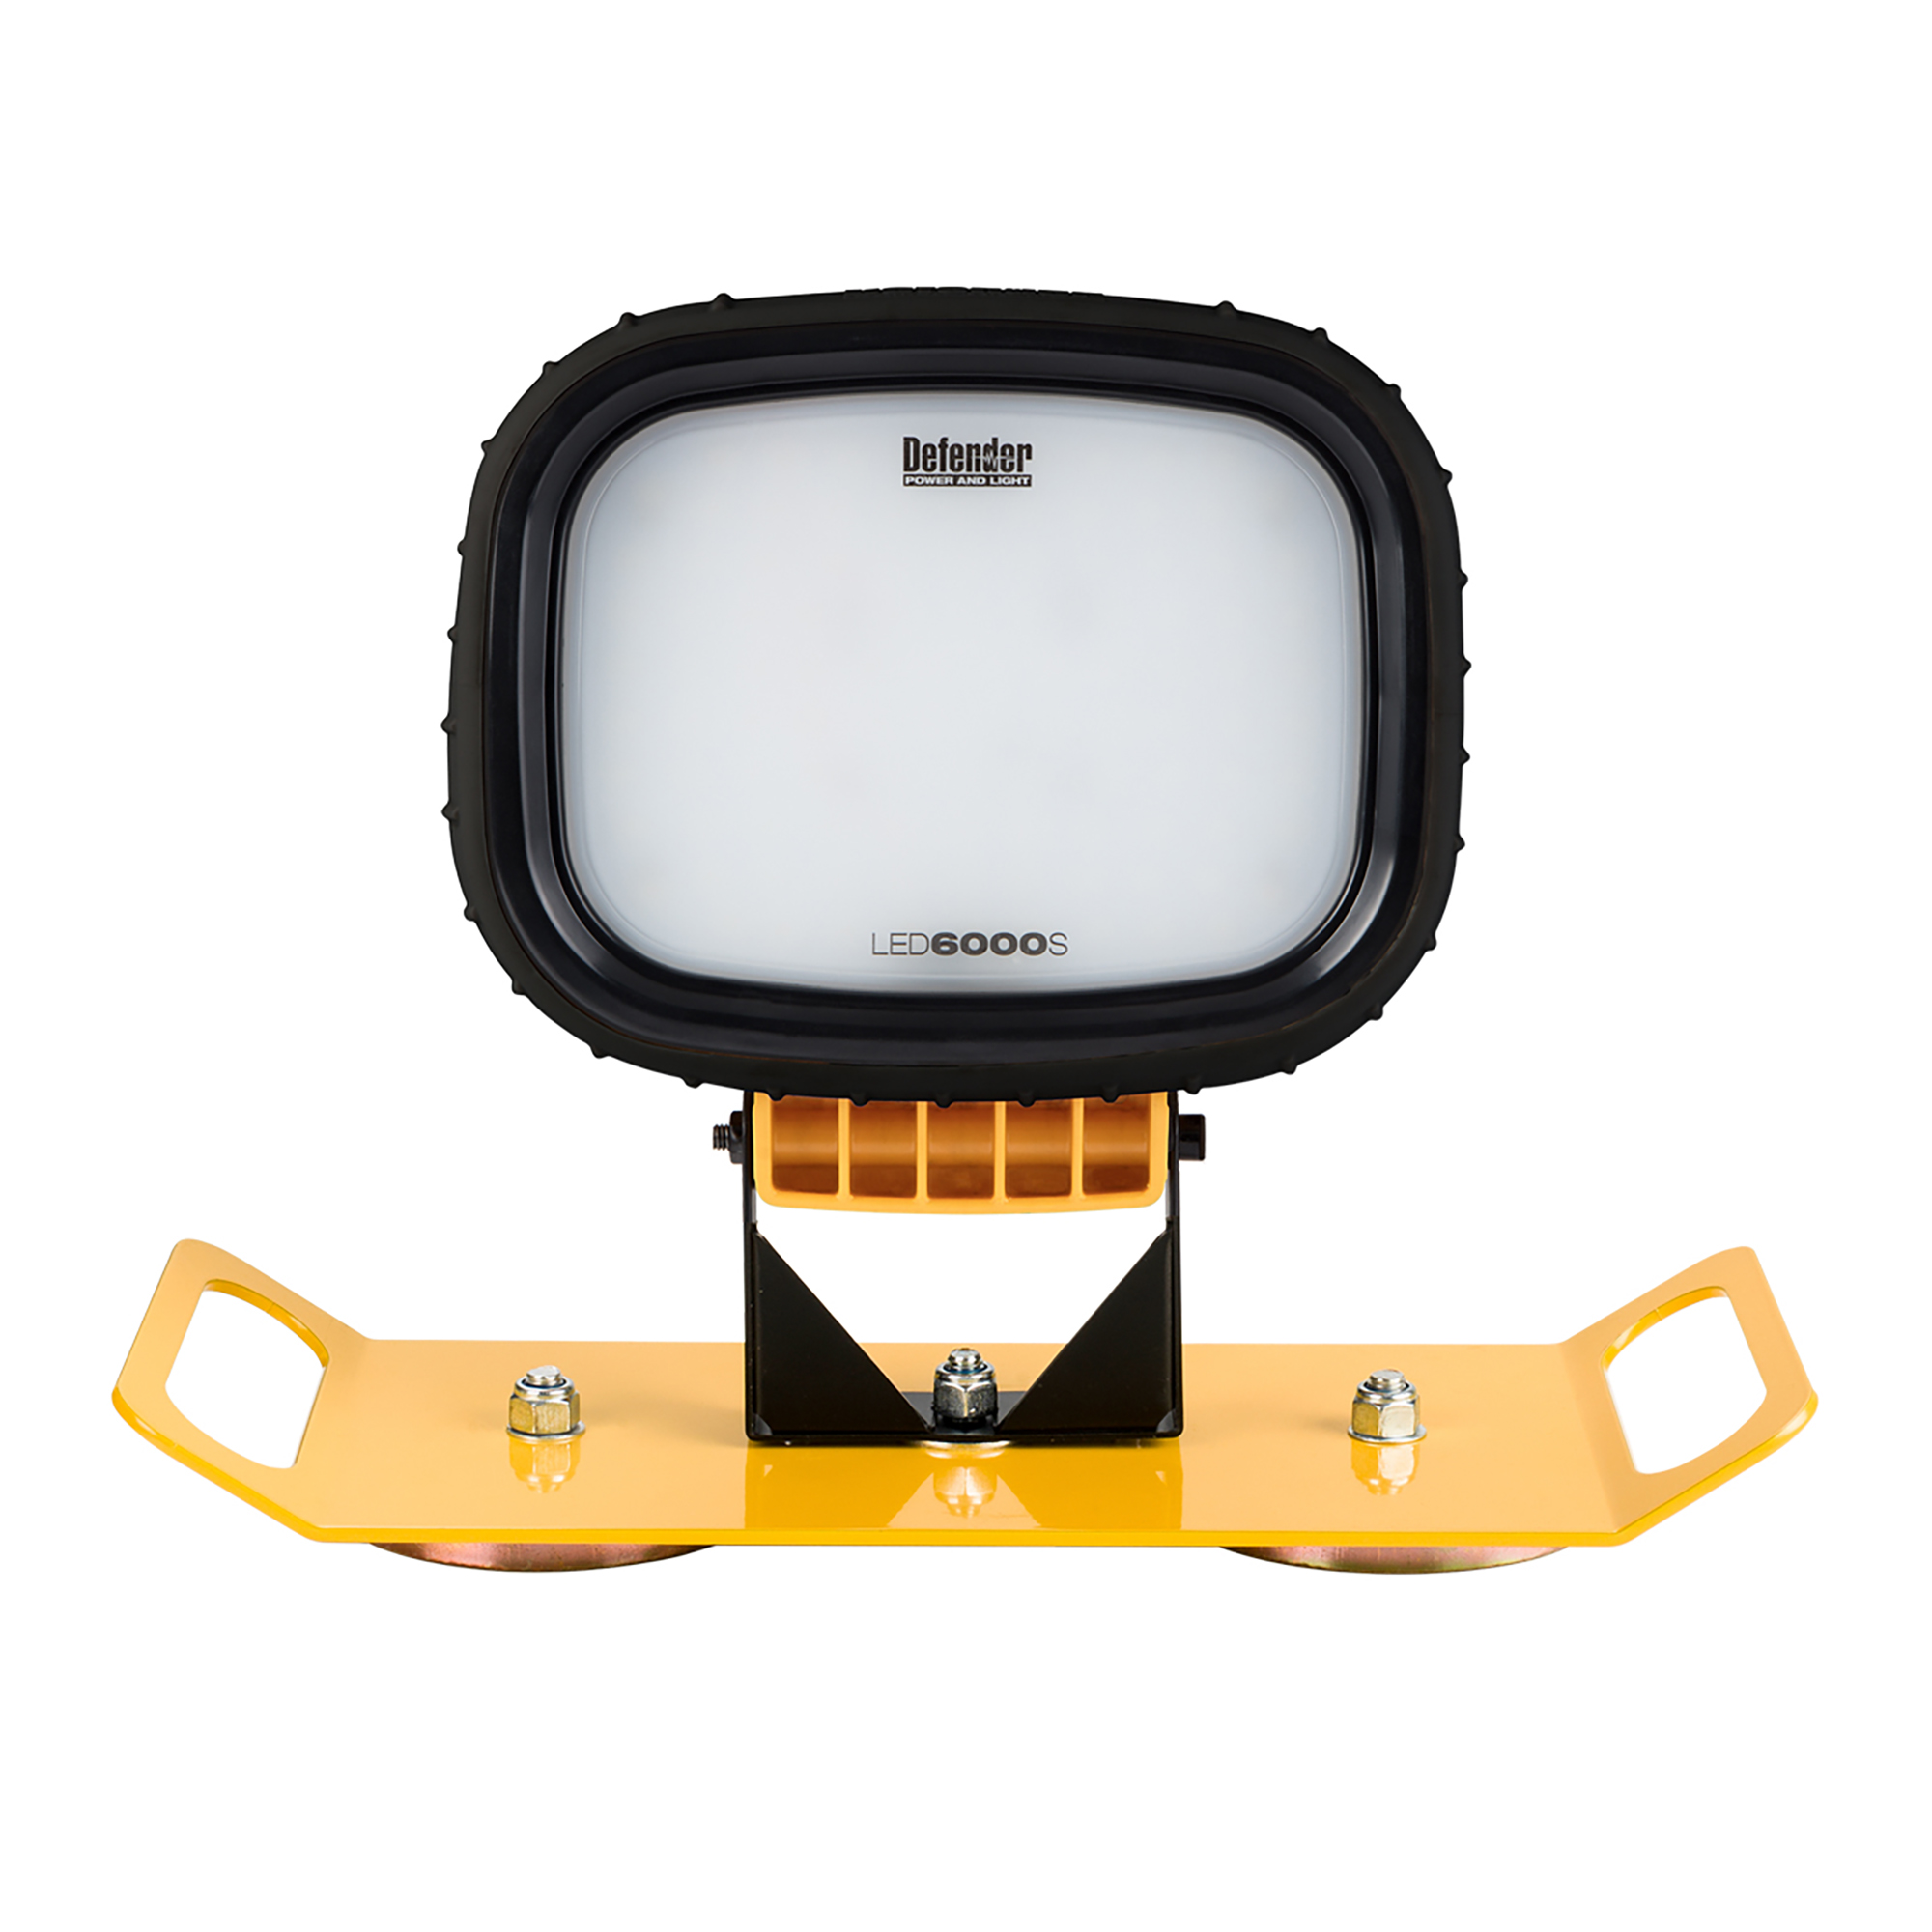 Single Defender LED6000S light head mounted onto a yellow magnetic bracket